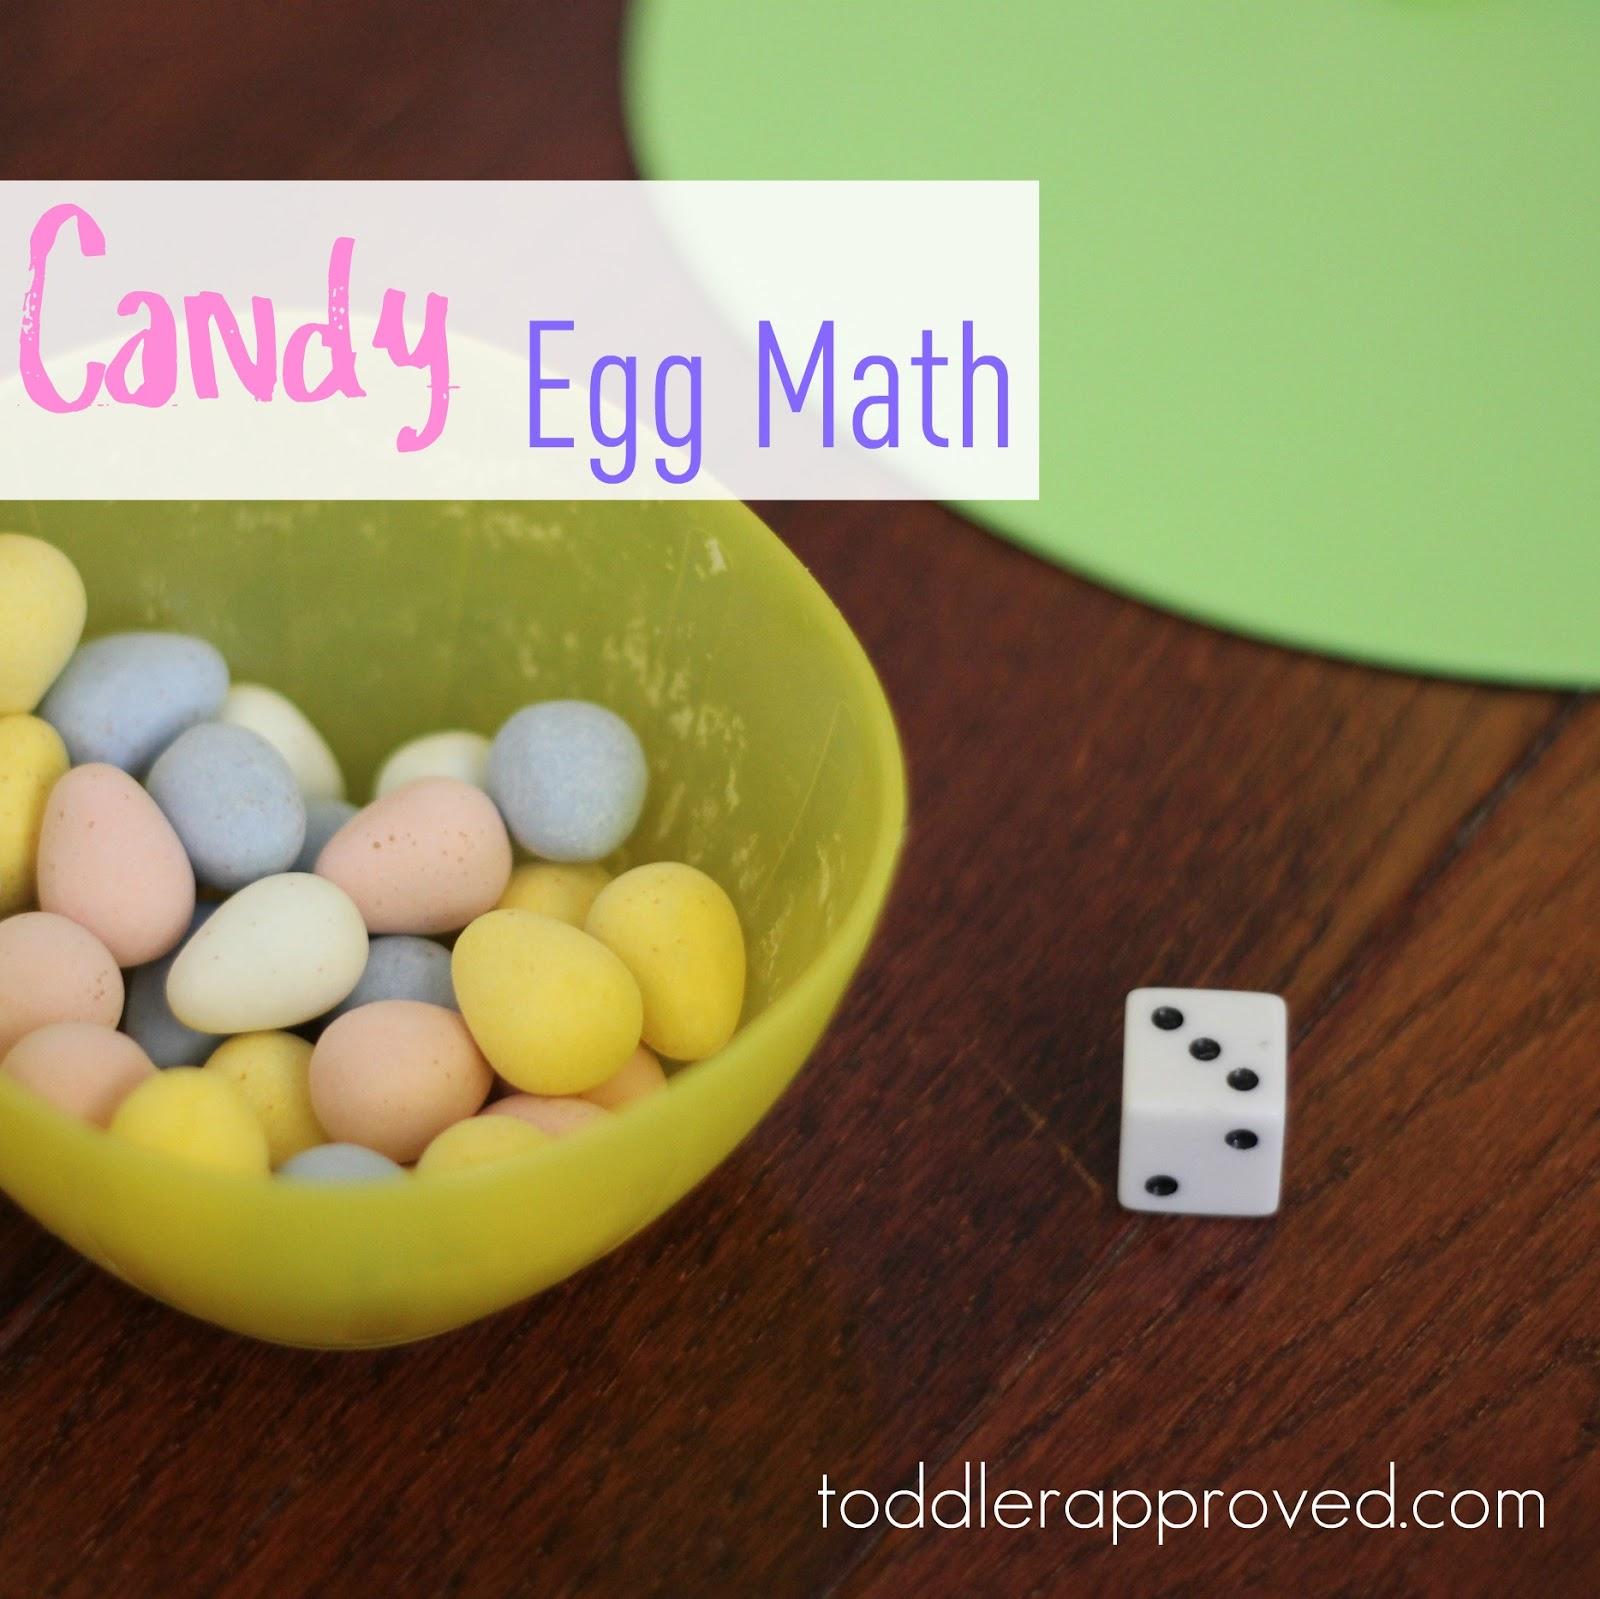 Toddler Approved Cool Candy Egg Math